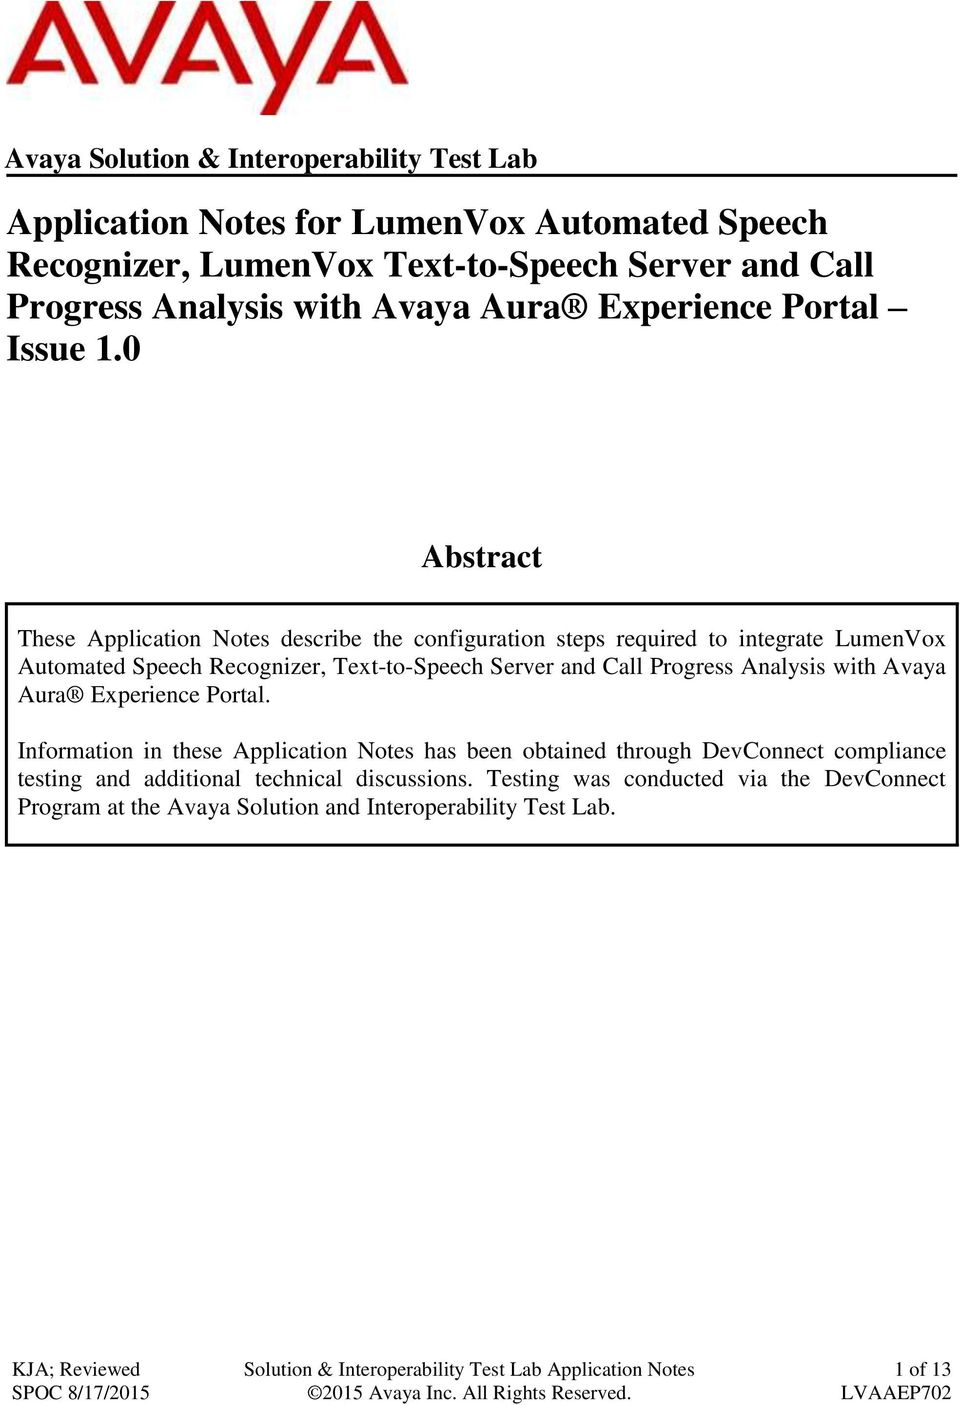 0 Abstract These Application Notes describe the configuration steps required to integrate LumenVox Automated Speech Recognizer, Text-to-Speech Server and Call